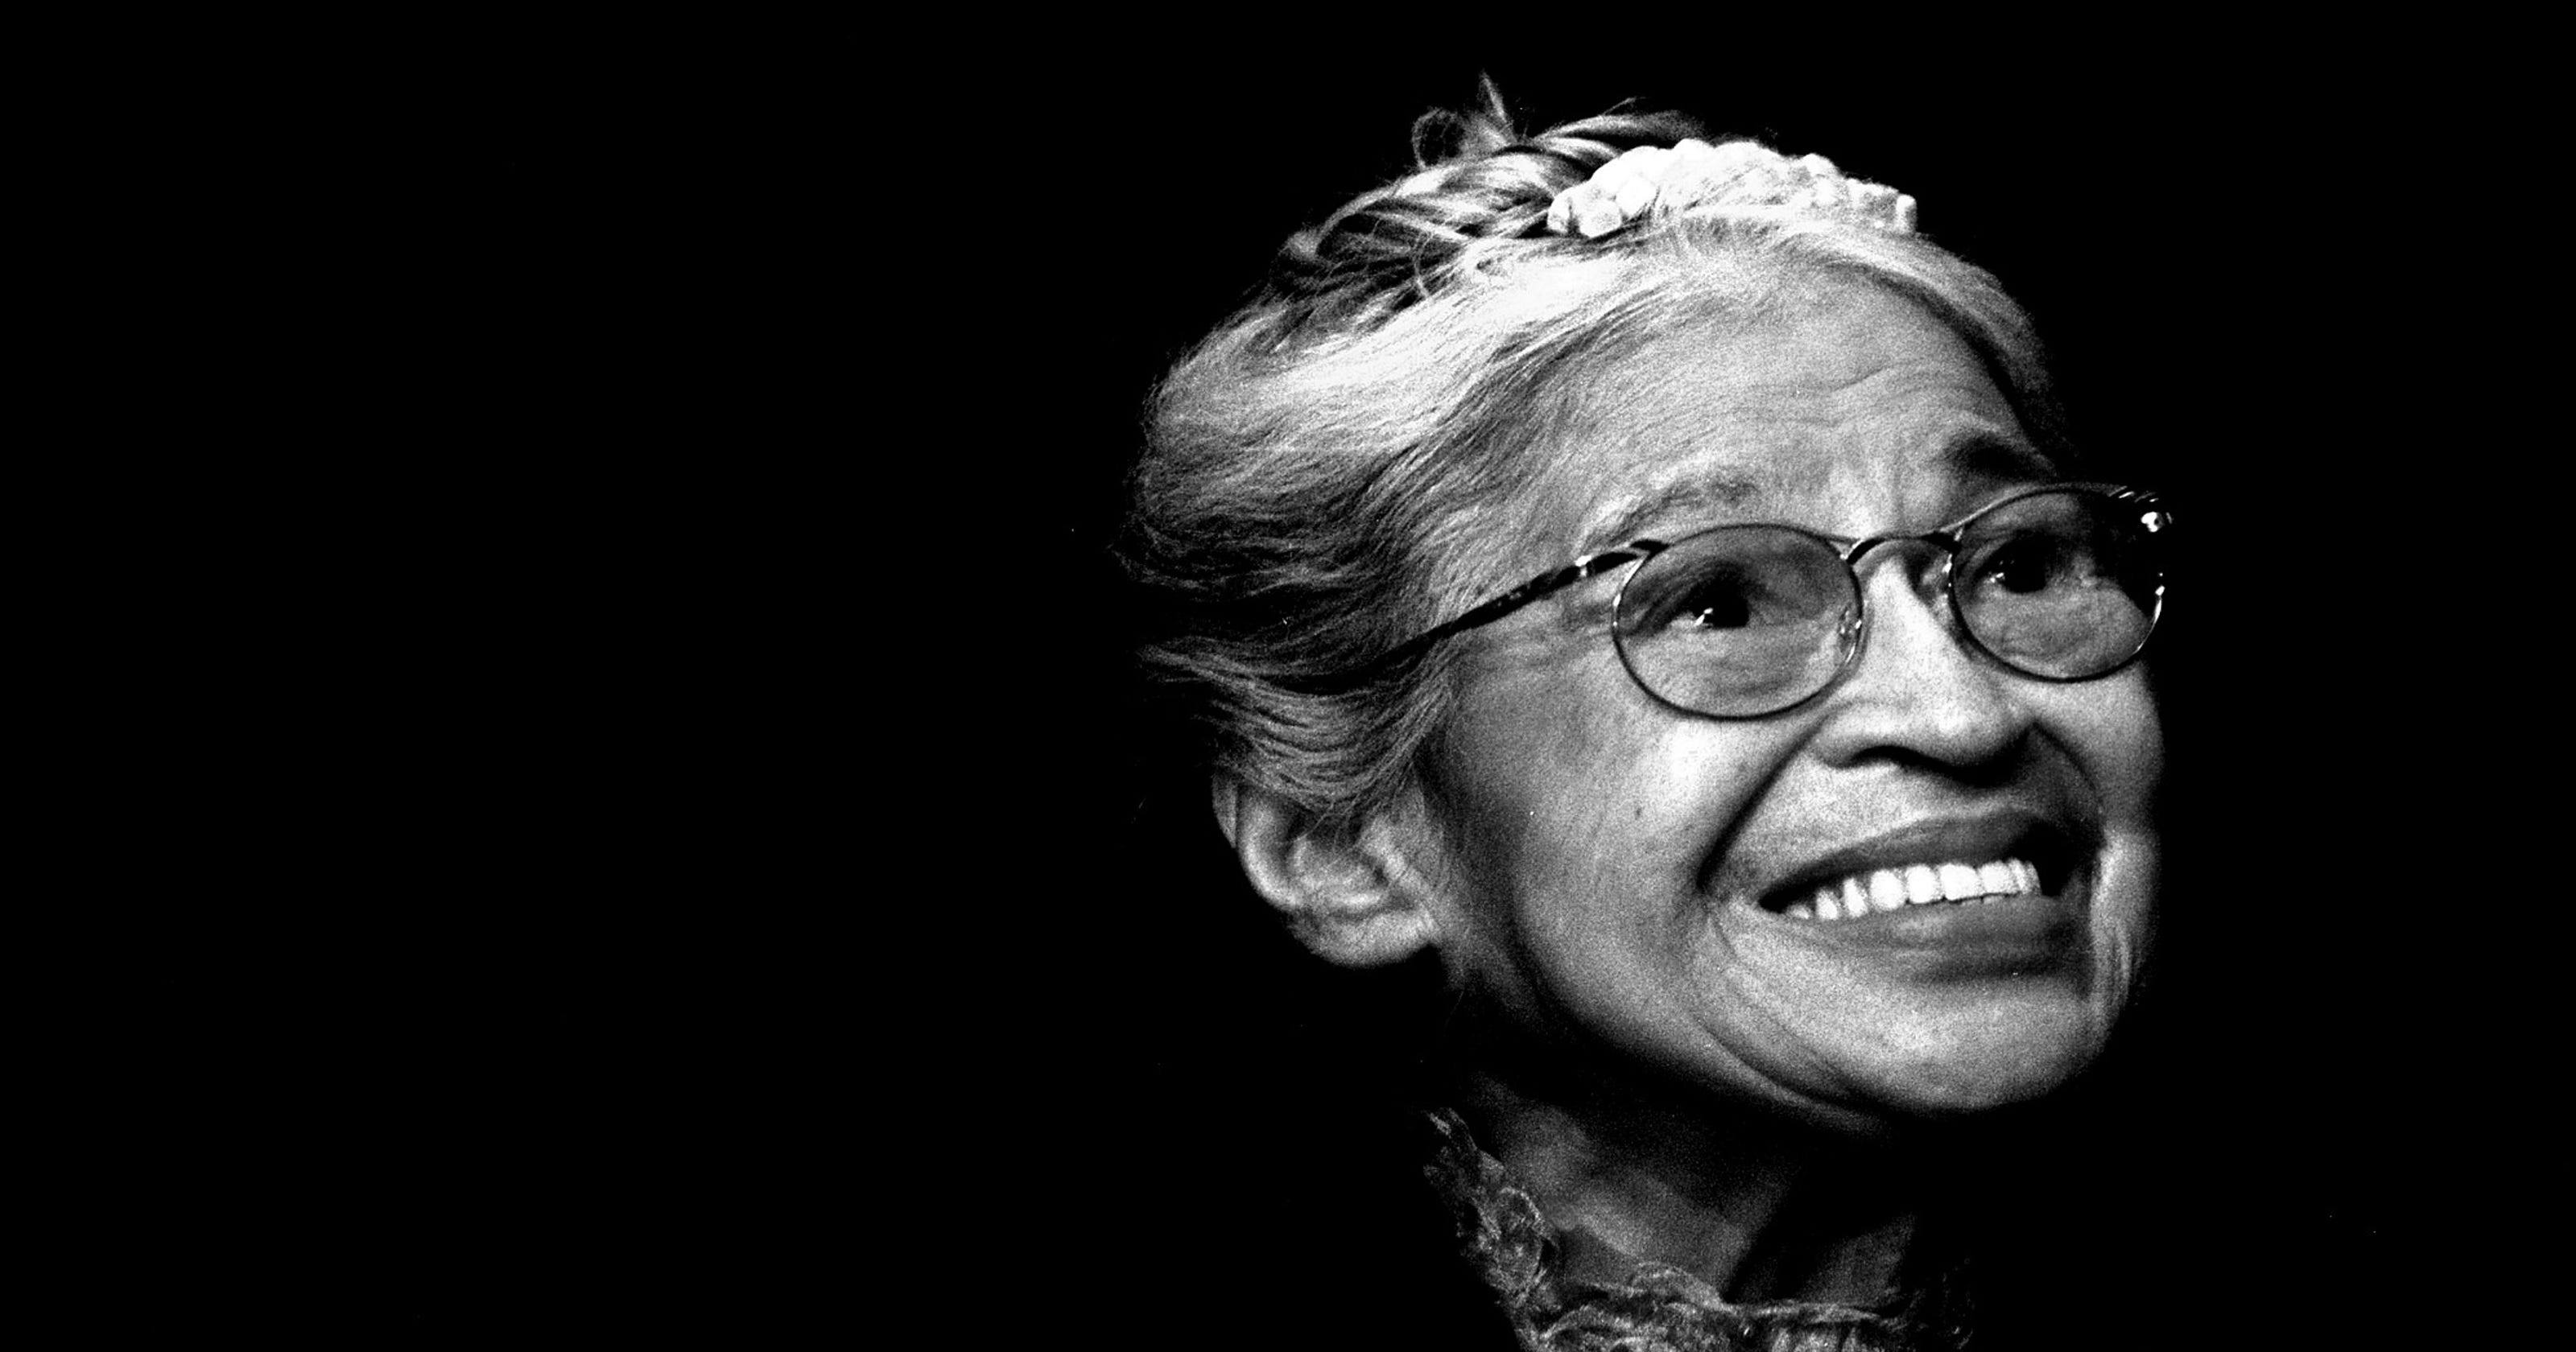 5 Facts About Rosa Parks And The Movement She Helped Spark